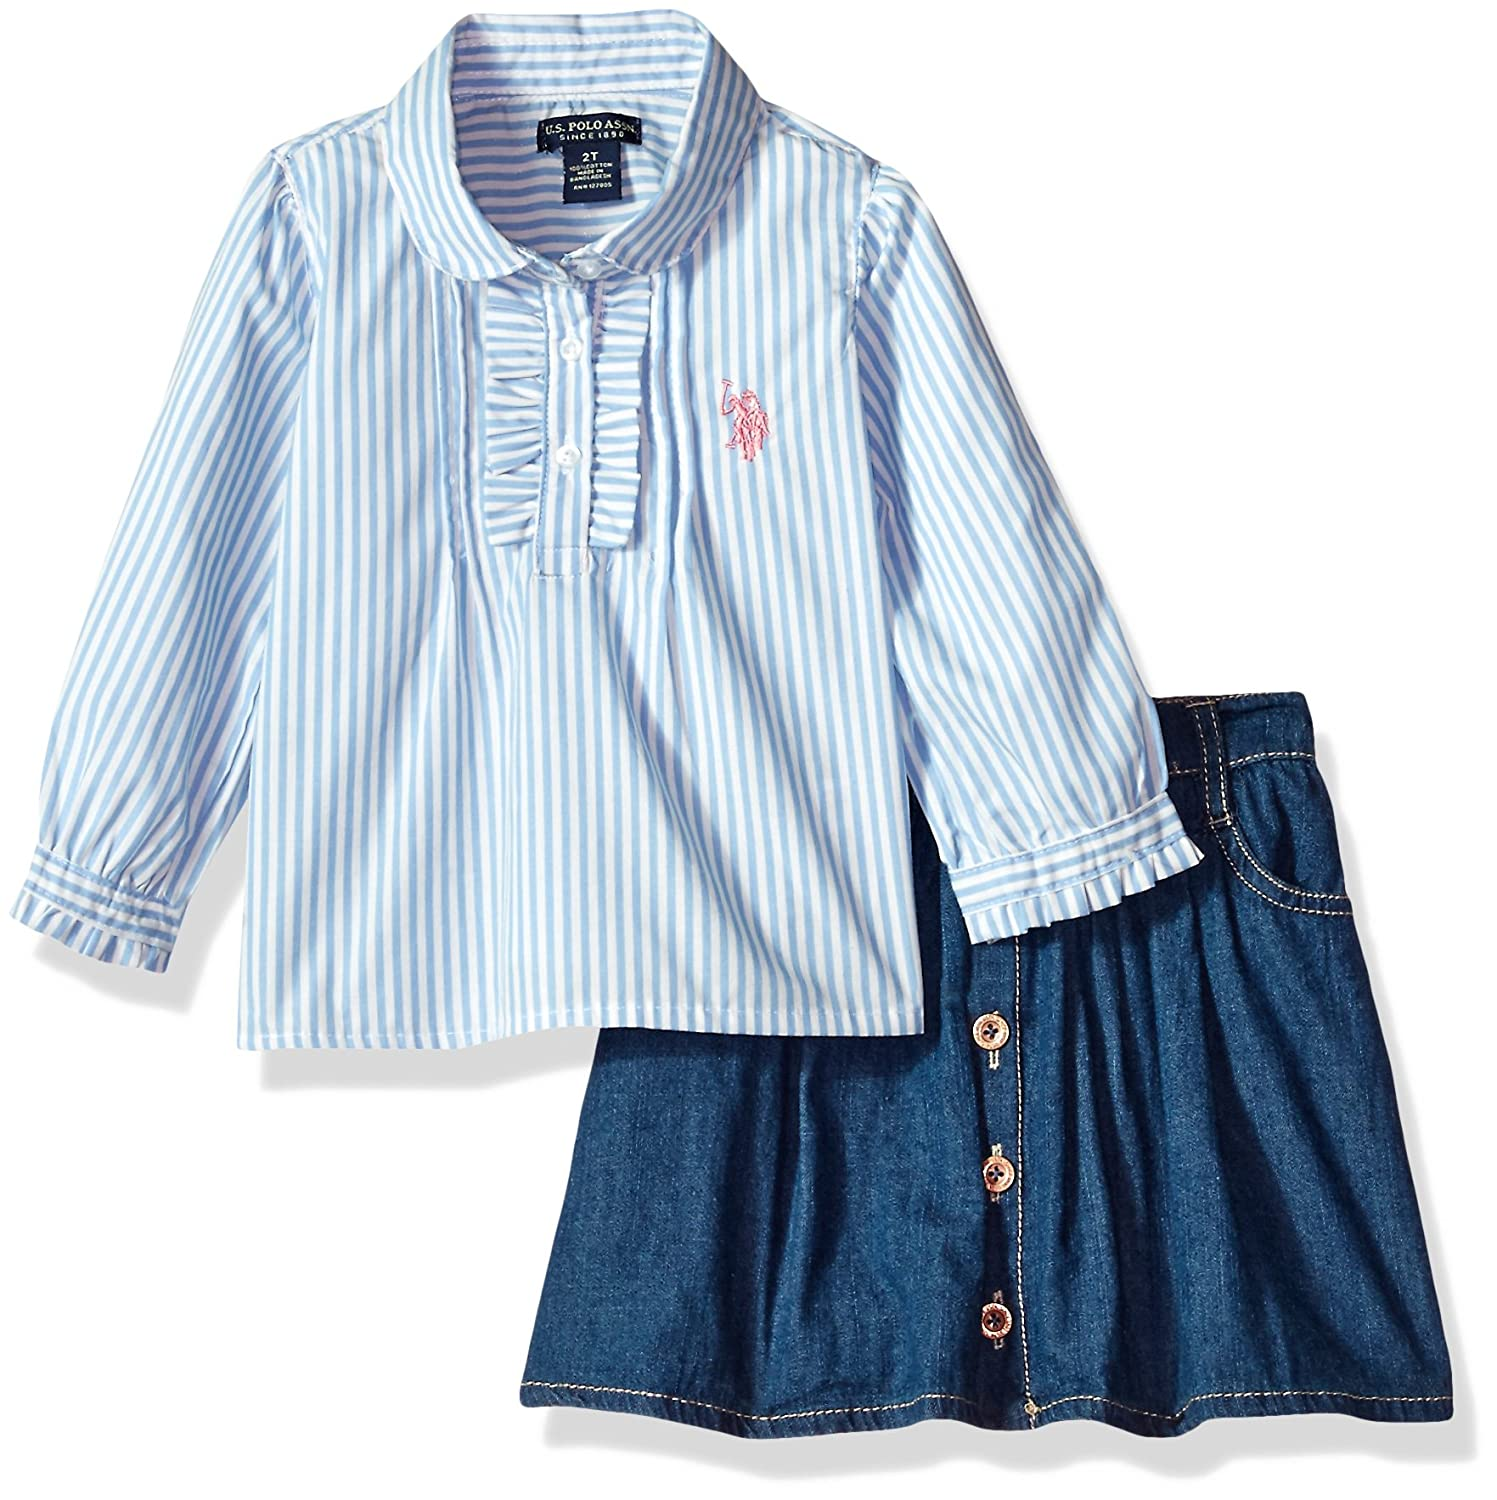 U.S. Polo Assn. Girls' Fashion Top and Skort Set